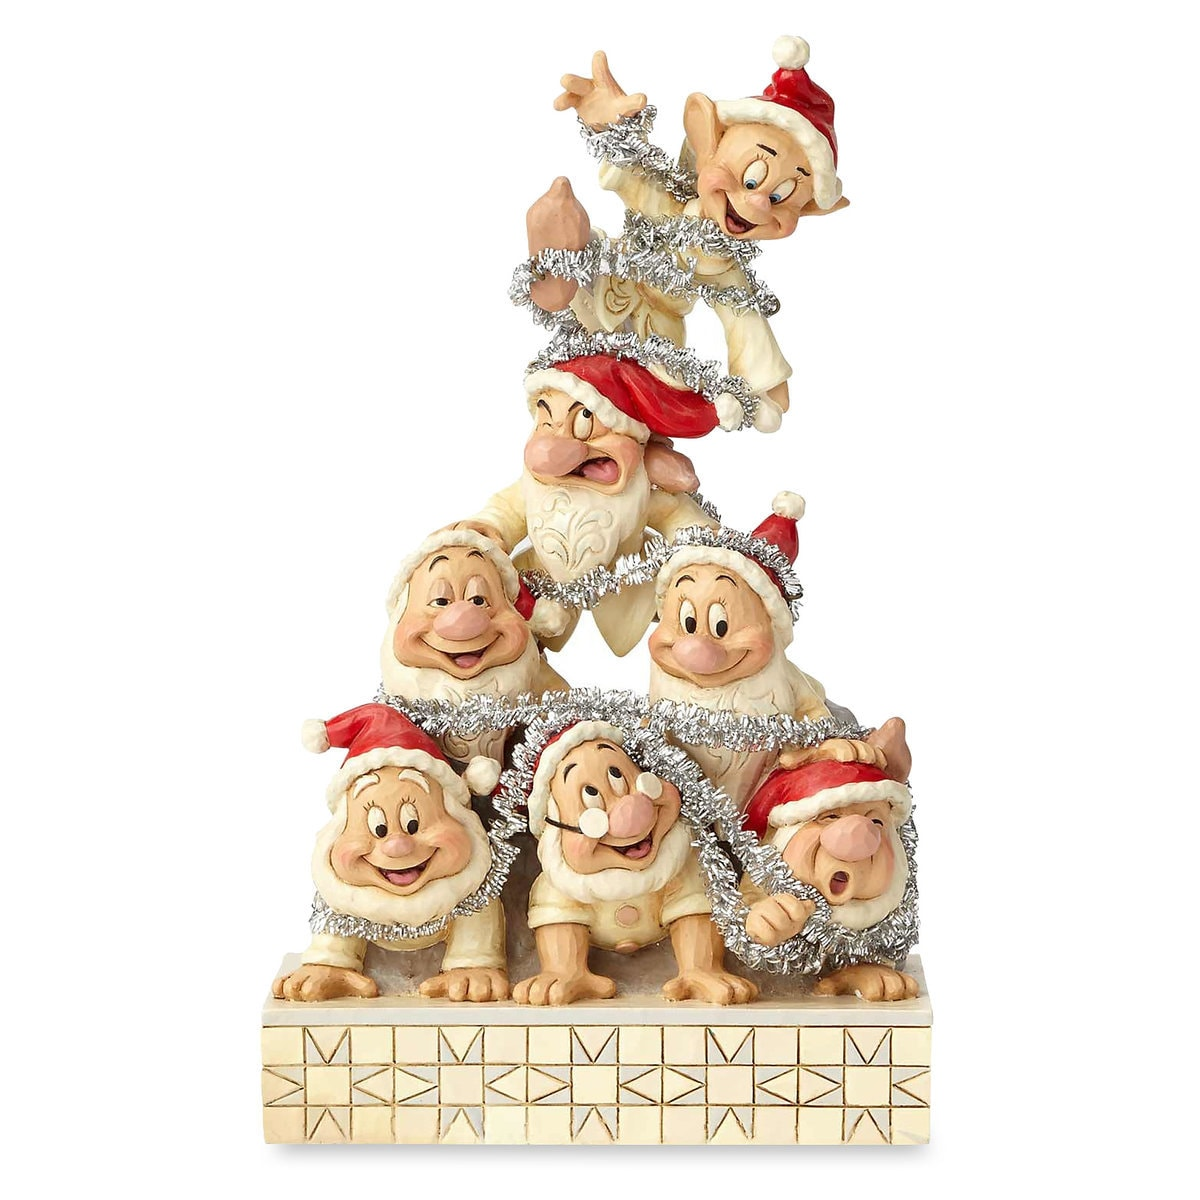 Product Image Of Seven Dwarfs Precarious Pyramid Figure